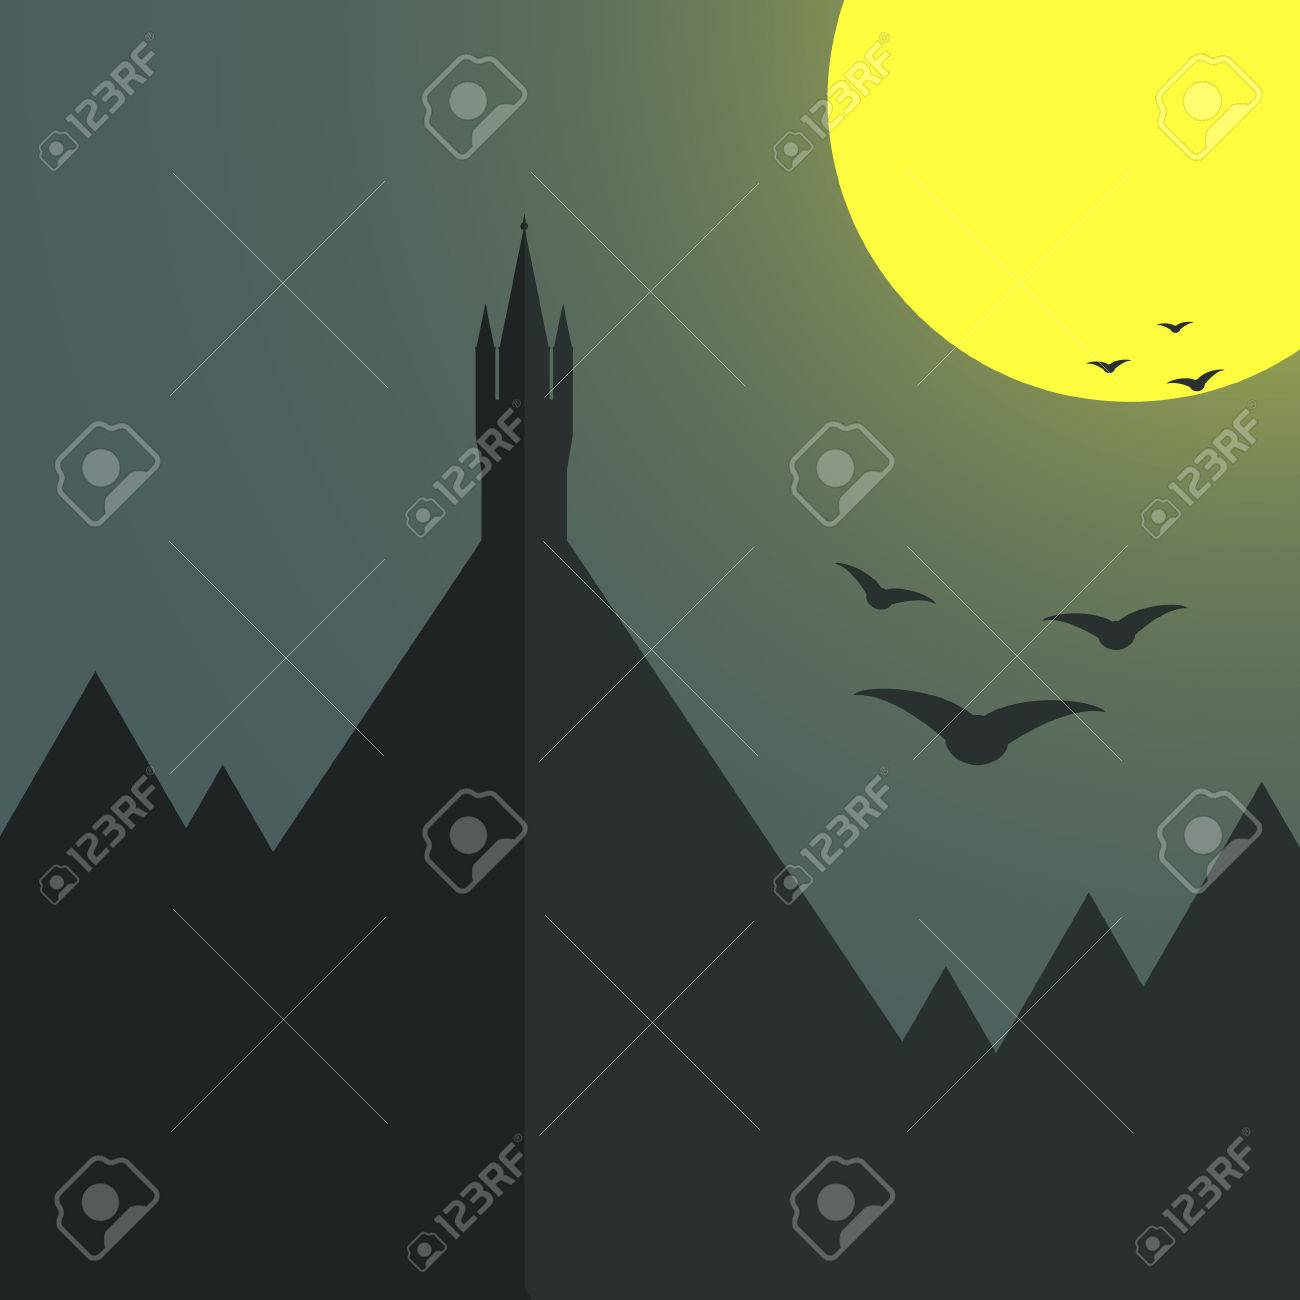 100 celestial template halloween creepy spider walk and celestial template castle standing alone on the top of the mountain moon light pronofoot35fo Image collections